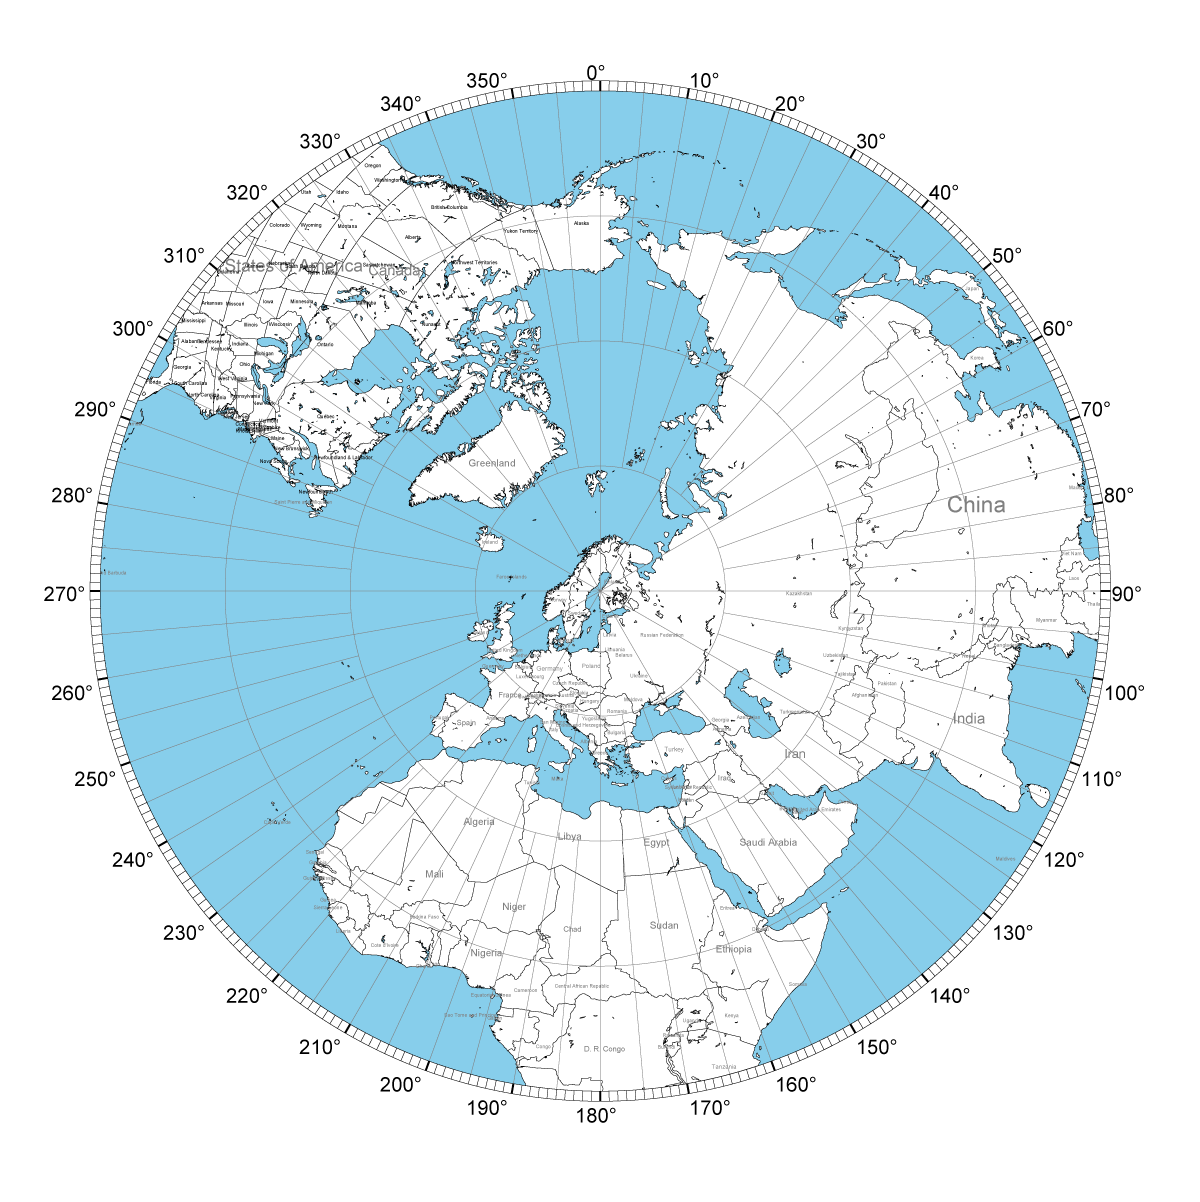 Using an Azimuth Map to Determine Antenna Direction — Foxtrot Lima